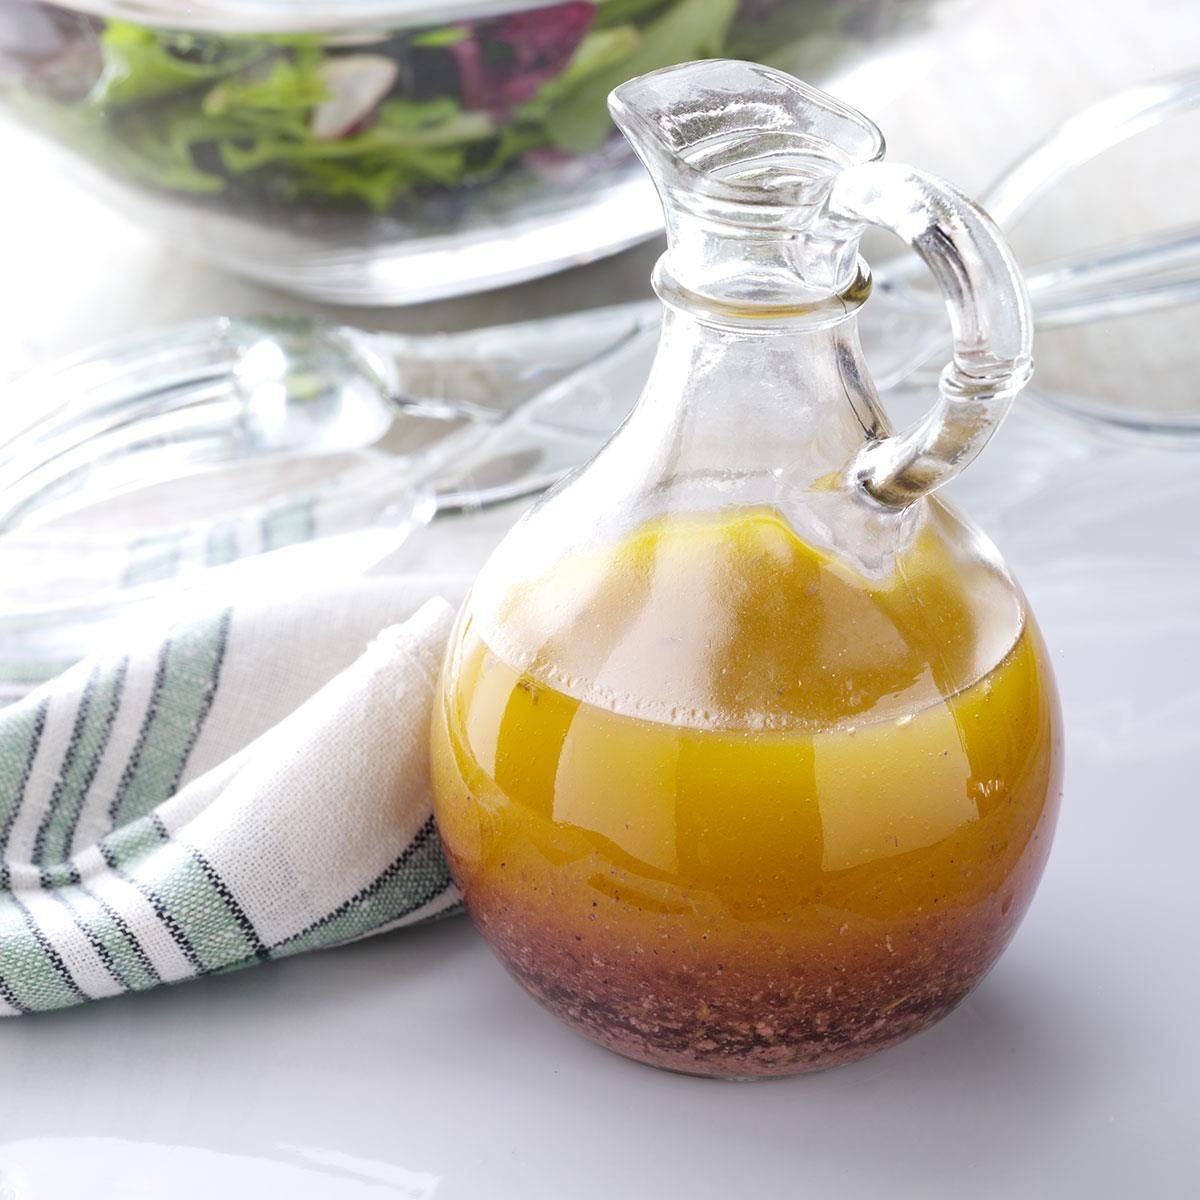 Italian Herb Salad Dressing Recipe -This recipe rounds out a meal. It's a delicious dressing that I like to keep on hand for topping a variety of salad greens.—Dan Wright, San Jose, California